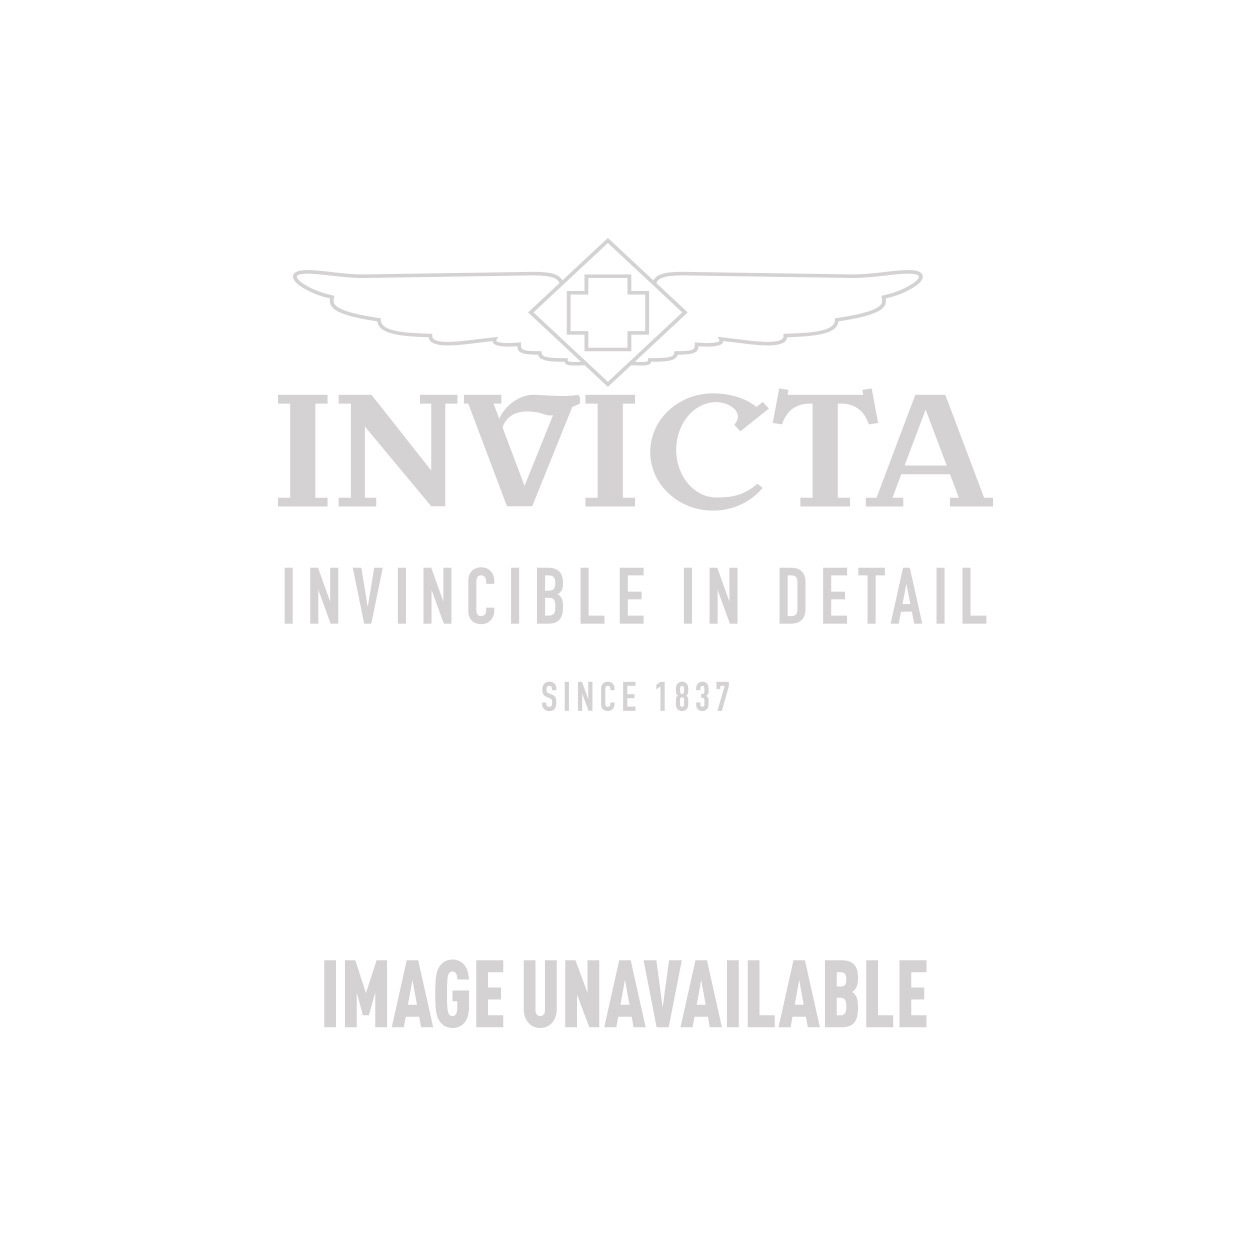 Invicta Excursion Swiss Made Quartz Watch - Gold, Stainless Steel case with Gold tone Stainless Steel band - Model 90054